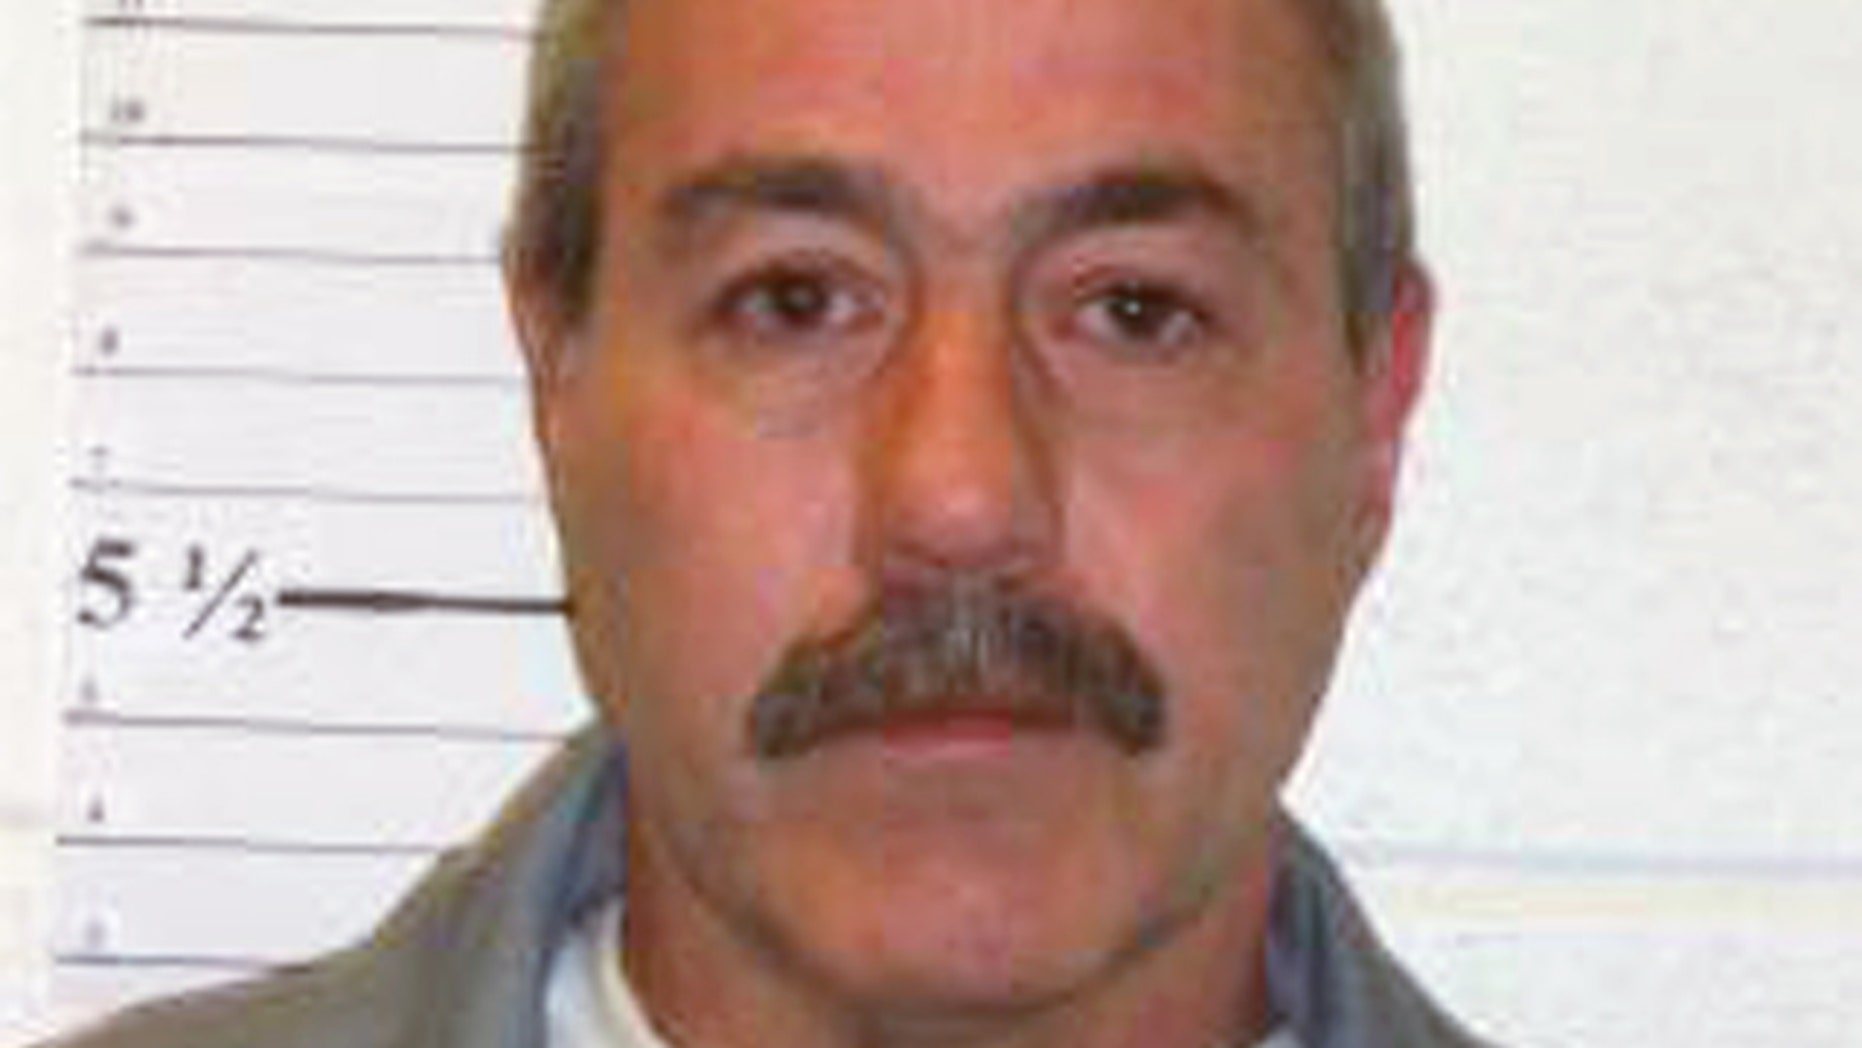 This Dec. 1, 2013 photo provided by the Missouri Department of Corrections shows David Zink, who was convicted of abducting and killing 19-year-old Amanda Morton in 2001. (Missouri Department of Corrections via AP)